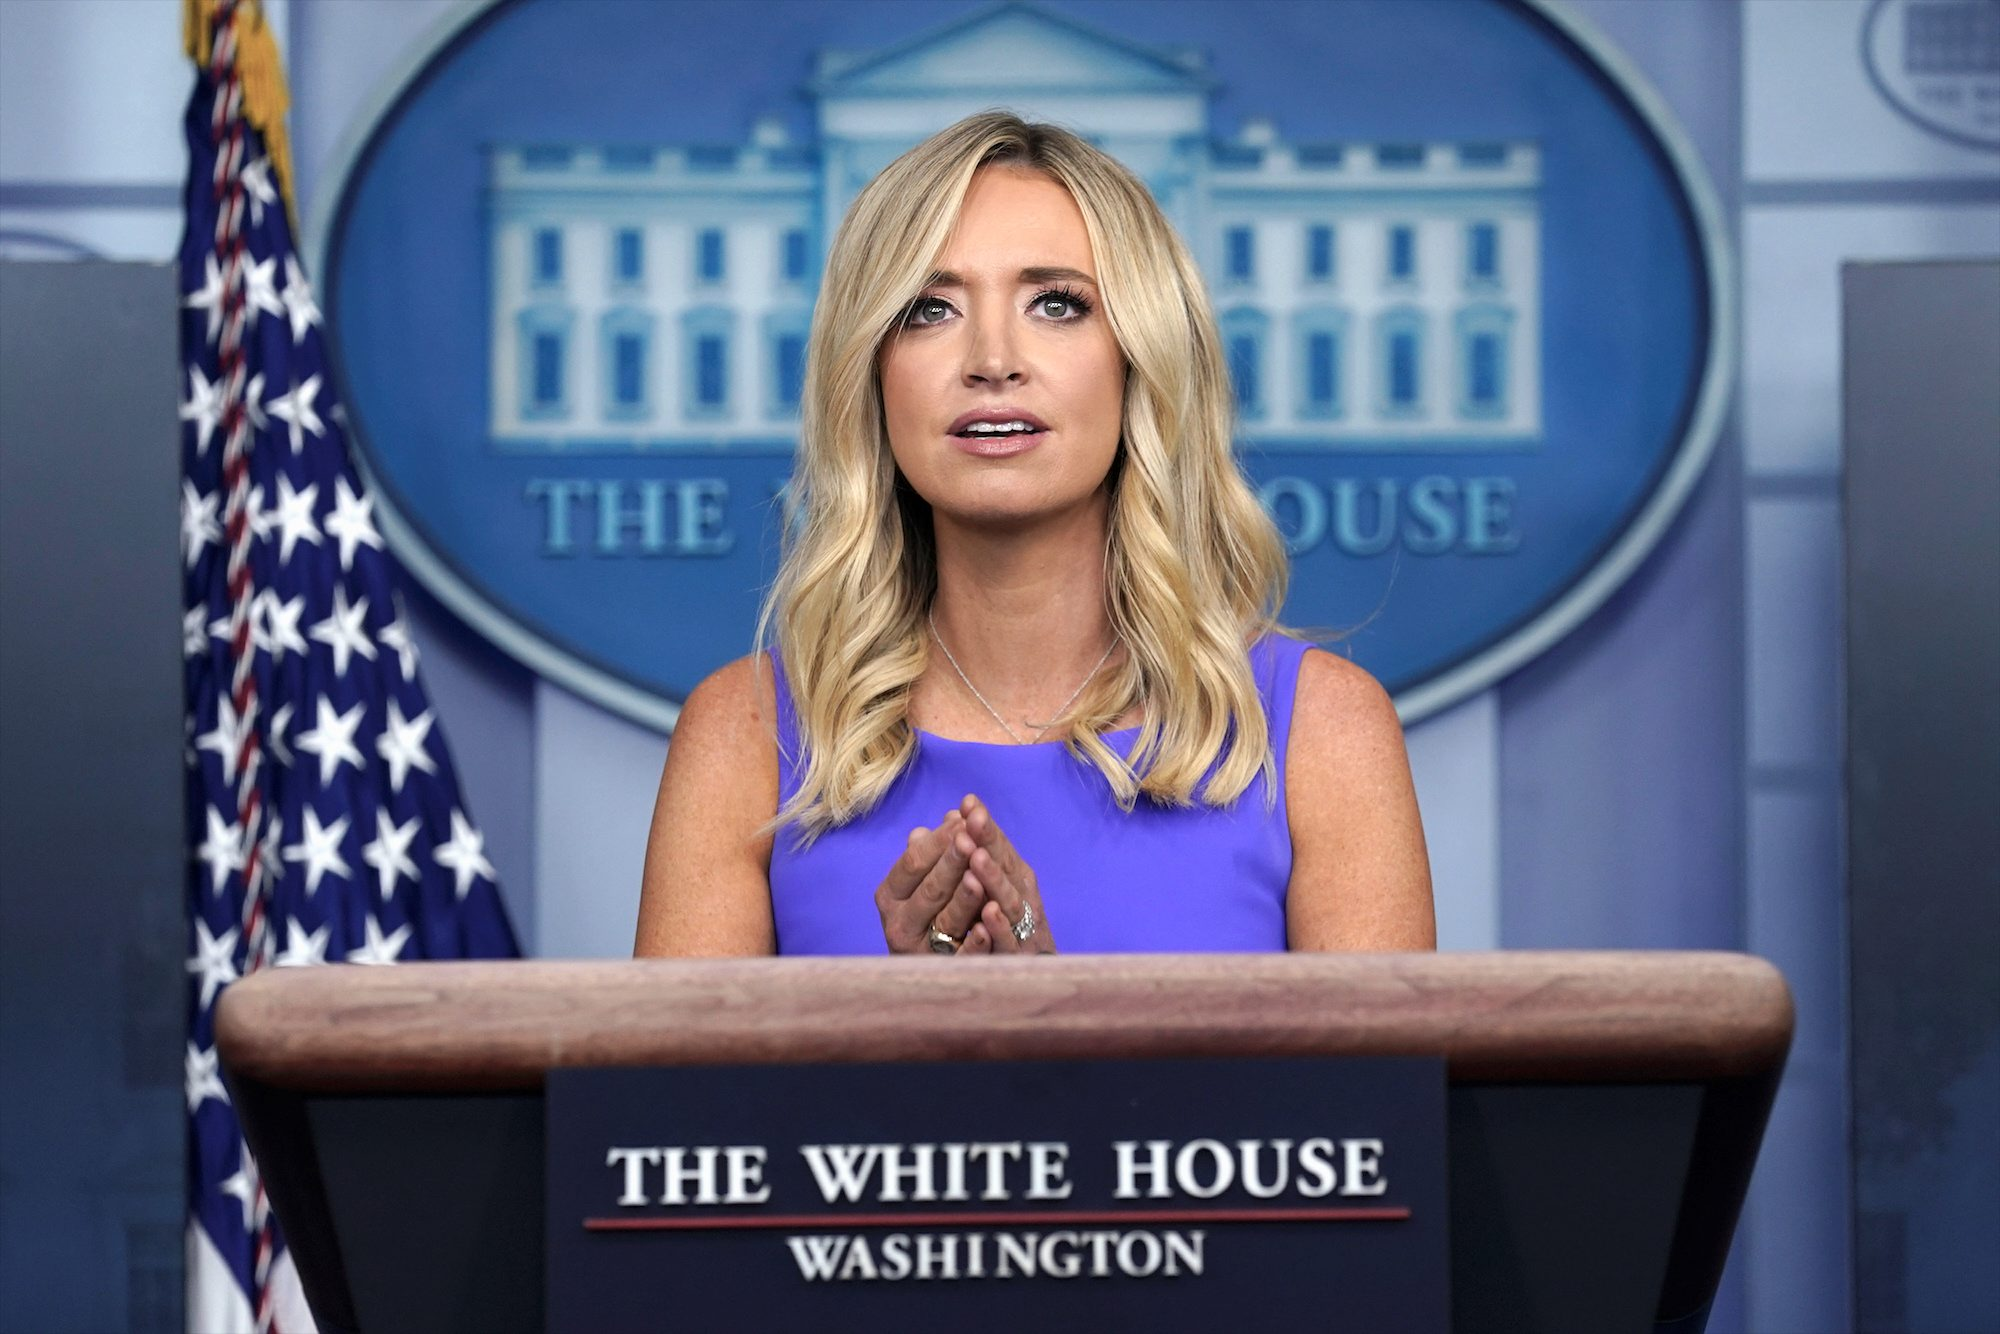 Inside The Beltway Glorious Kayleigh Mcenany Receives Praise As White House Press Secretary Washington Times